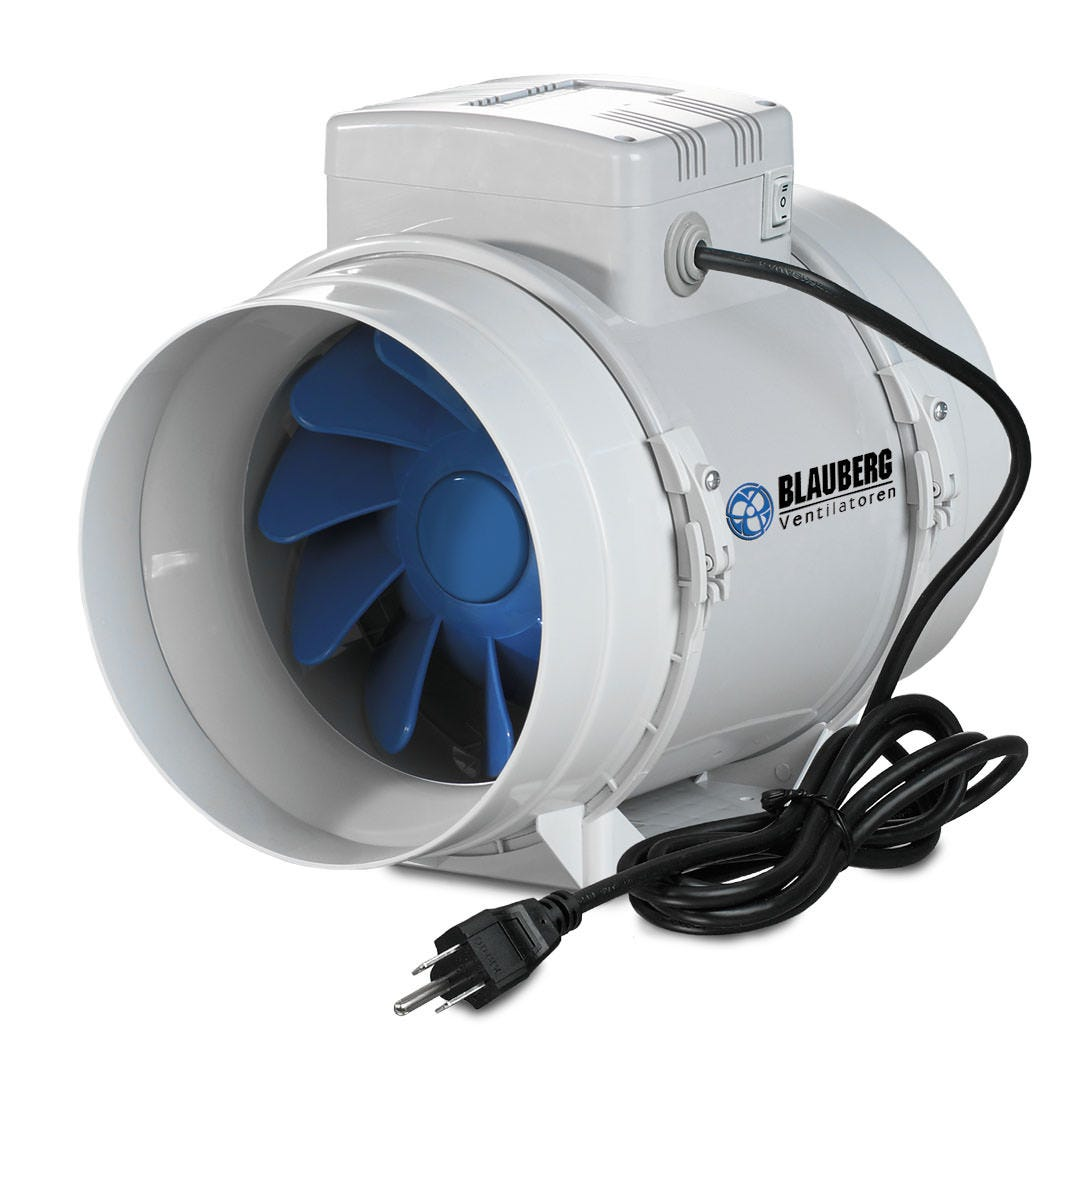 Blauberg Turbo Inline Mixed Flow Fan 6 Inch 250 Cfm Discontinued